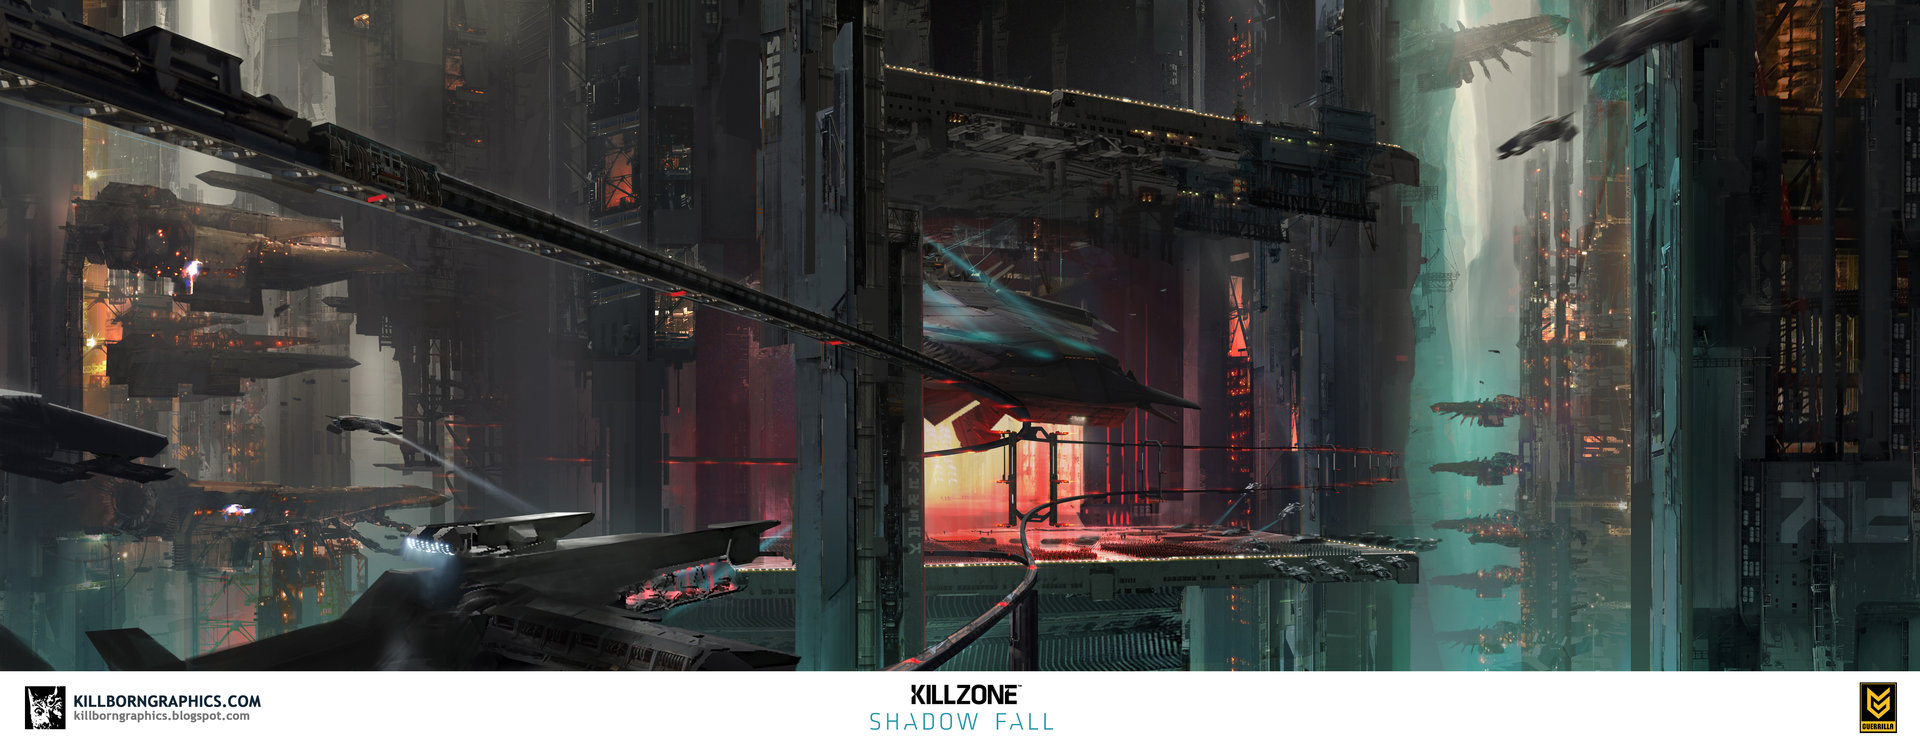 Killzone shadowfall canyon